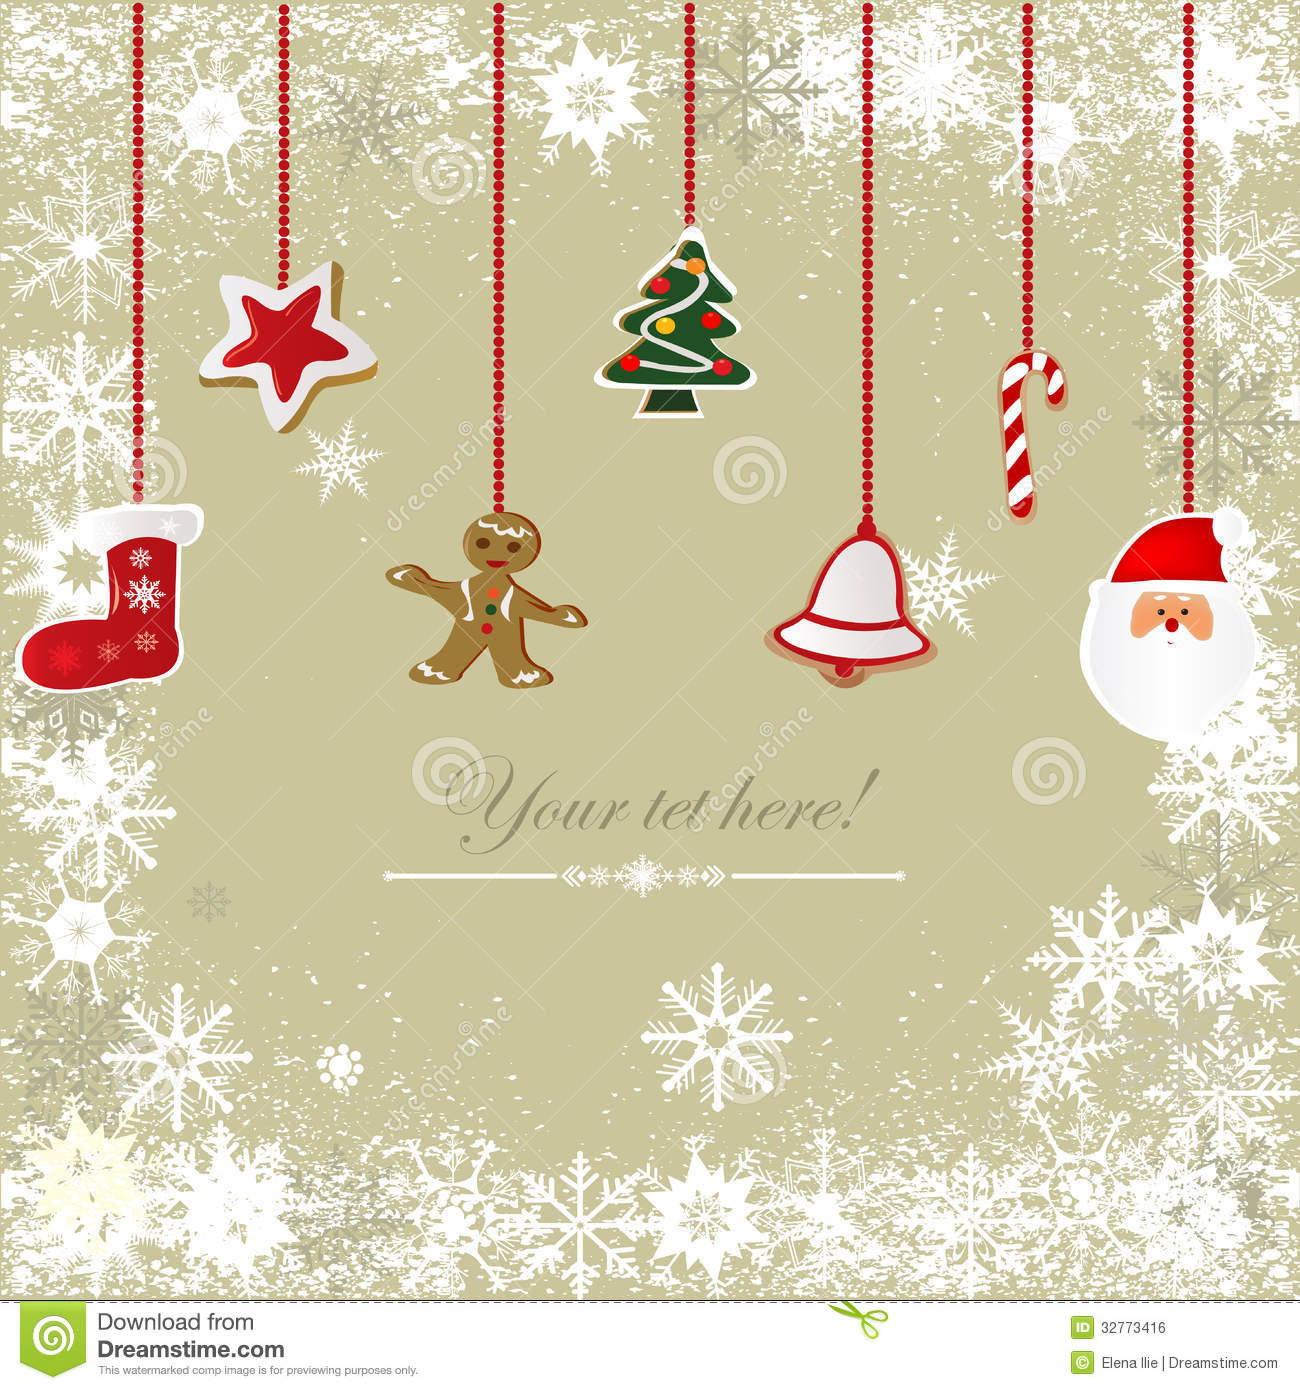 Vintage, Grungy Christmas Background Royalty Free Stock